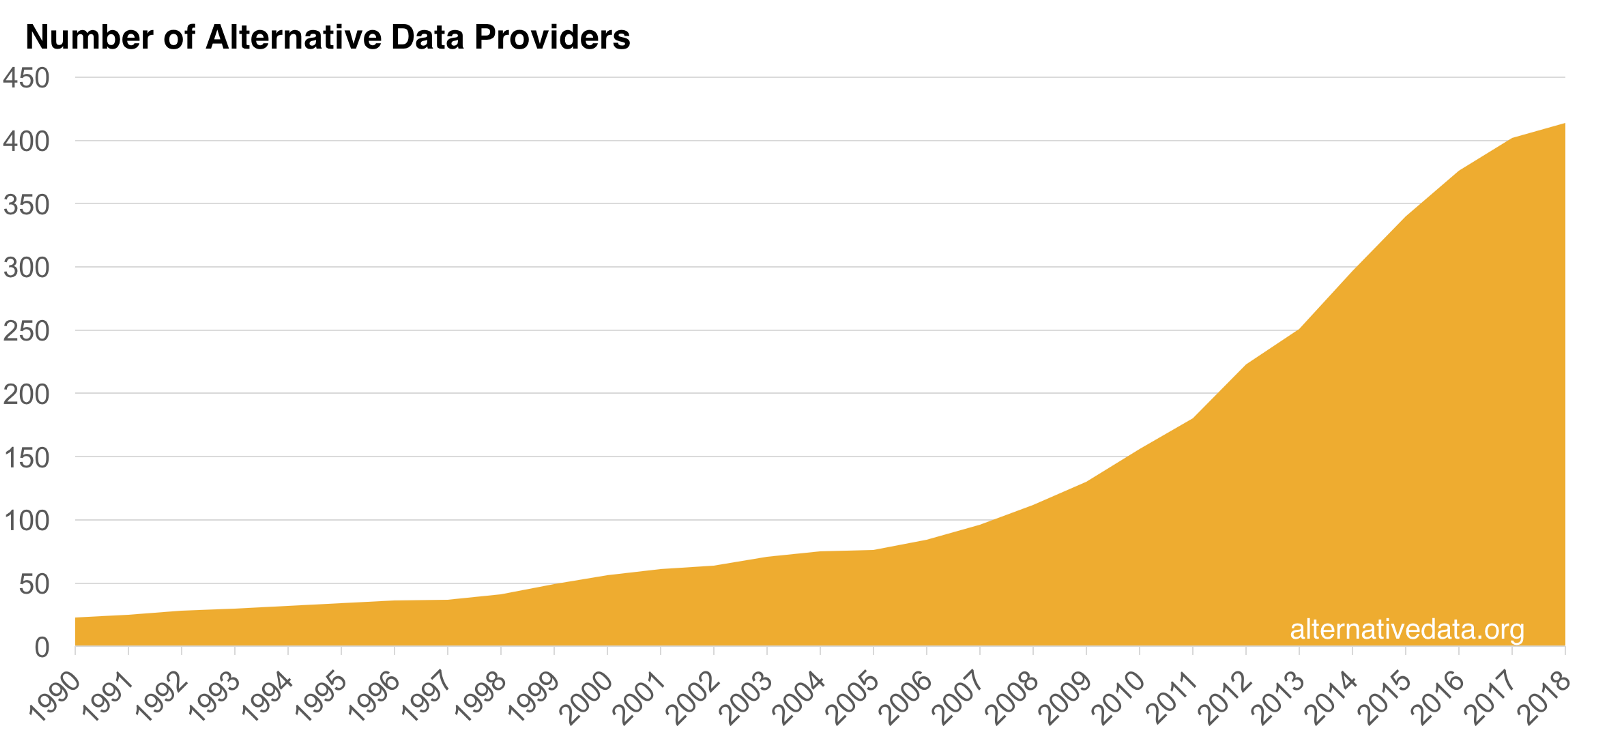 The number of Alternative Data Providers is exploding.